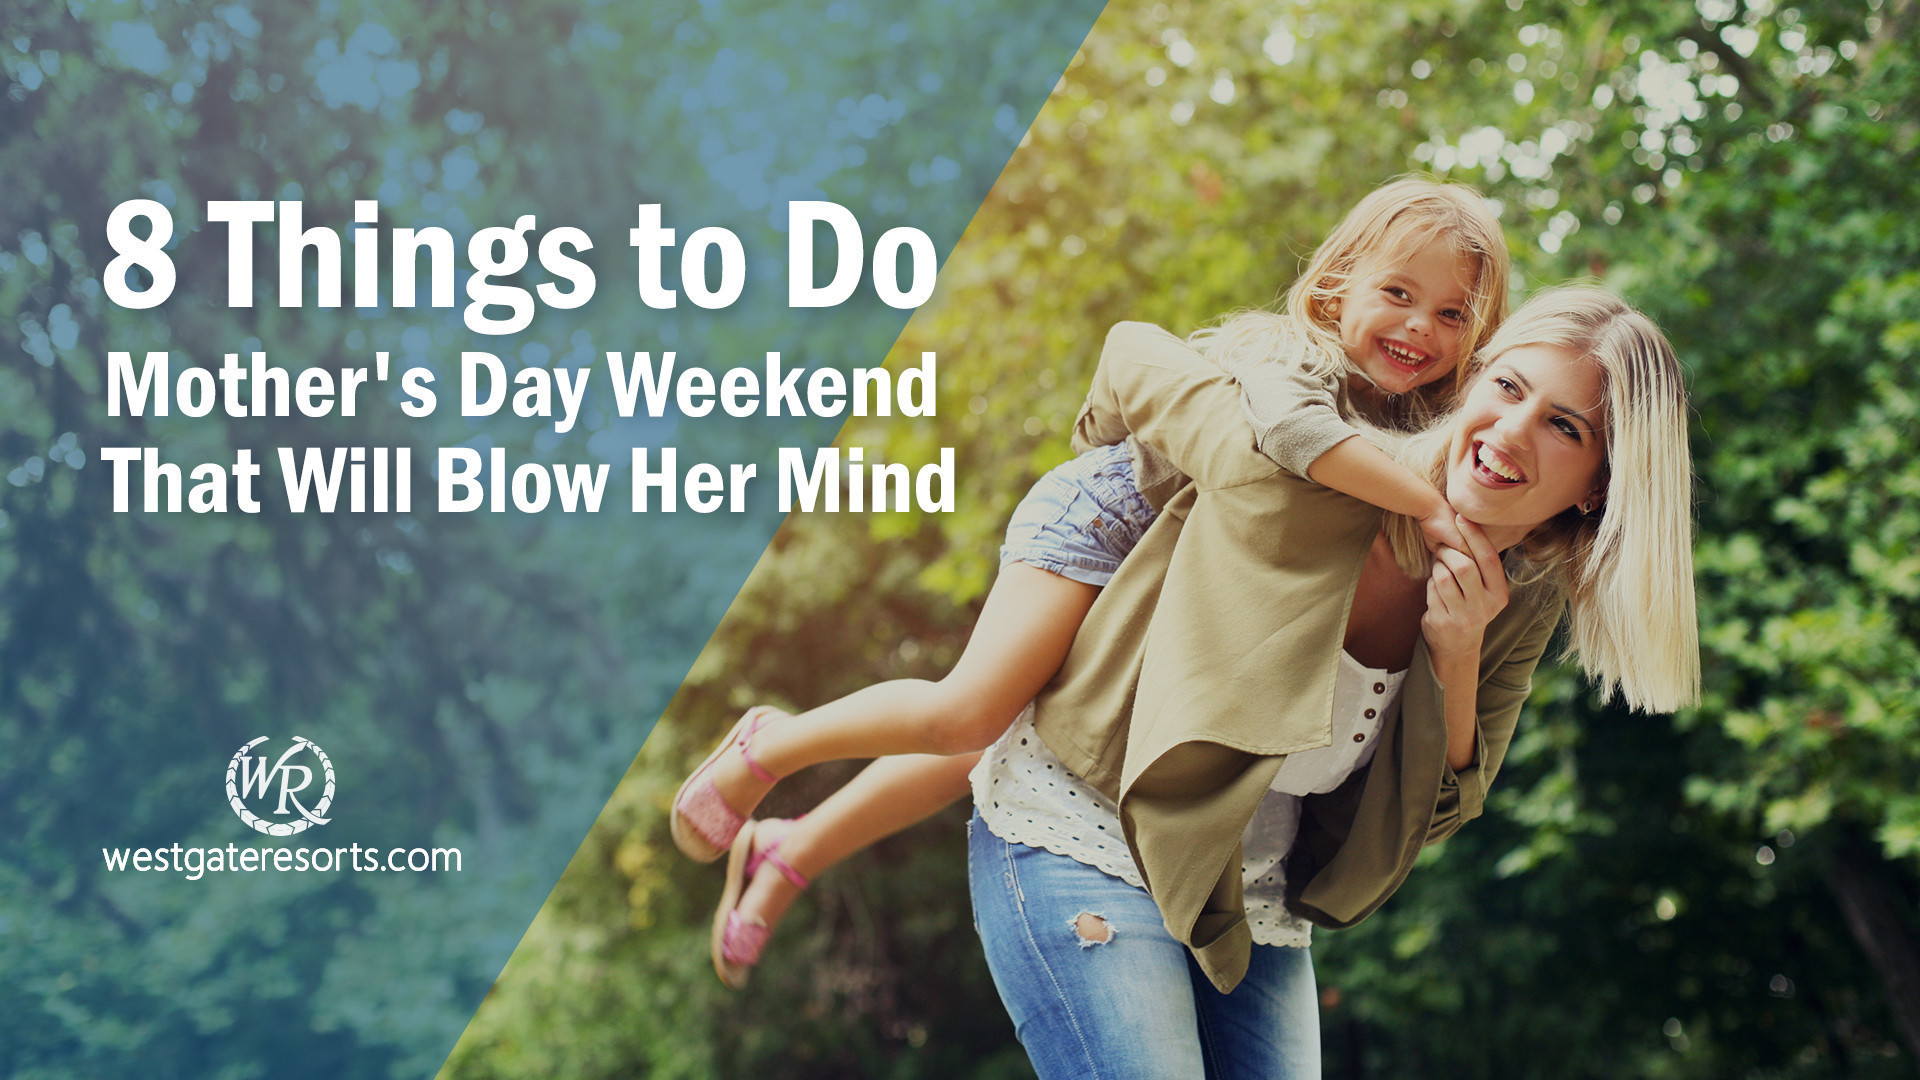 8 Things to Do Mother's Day Weekend | Mother's Day Weekend Ideas | Westgate Resorts